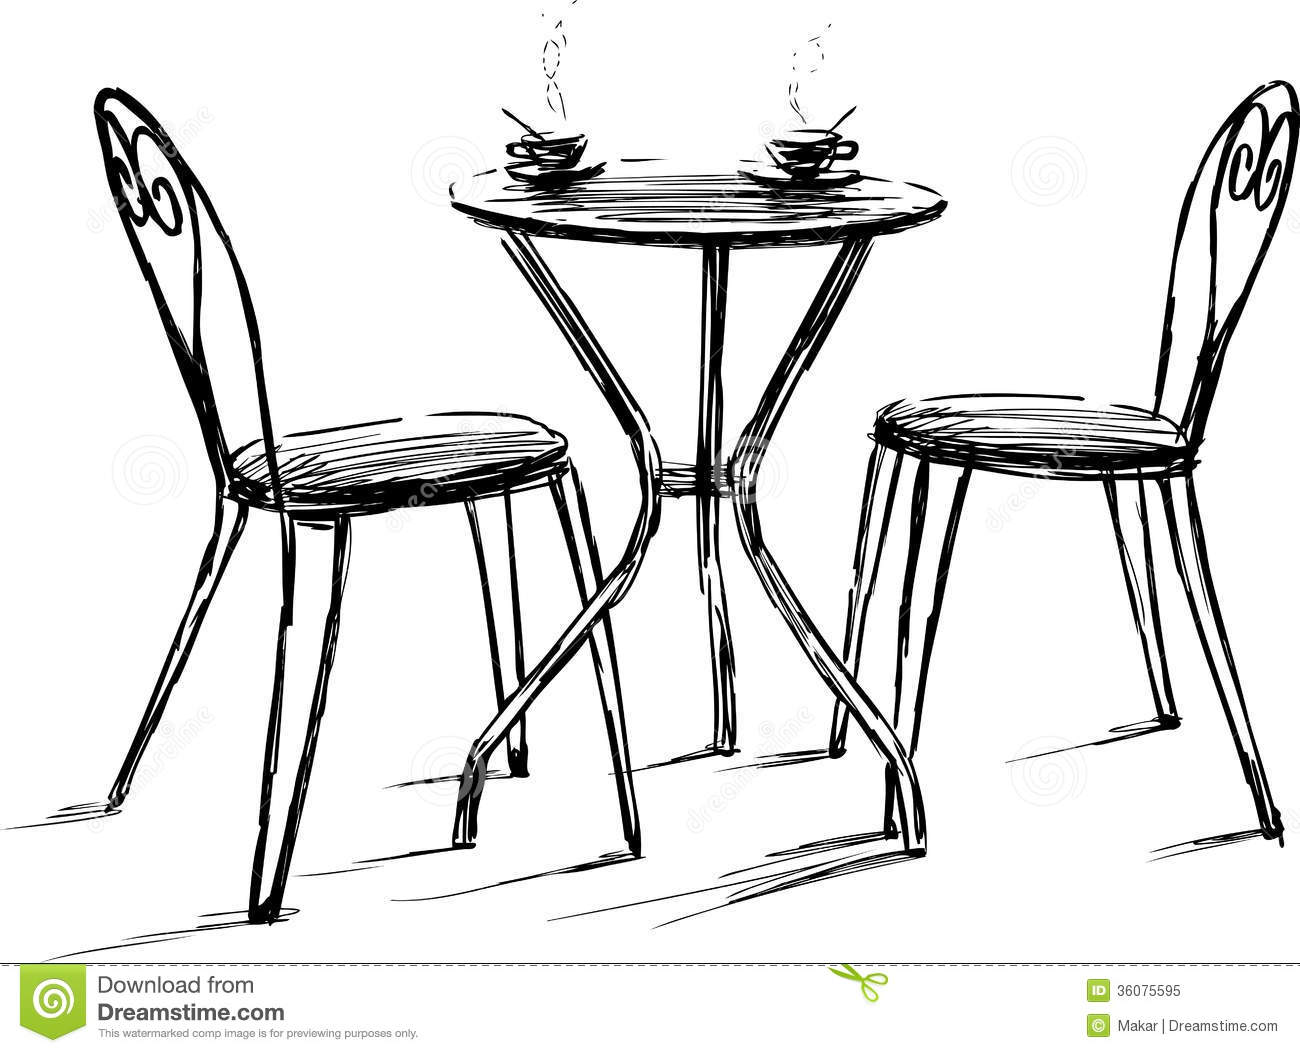 Impressive Sketch of a Cafe Table and Chairs 1300 x 1053 · 129 kB · jpeg